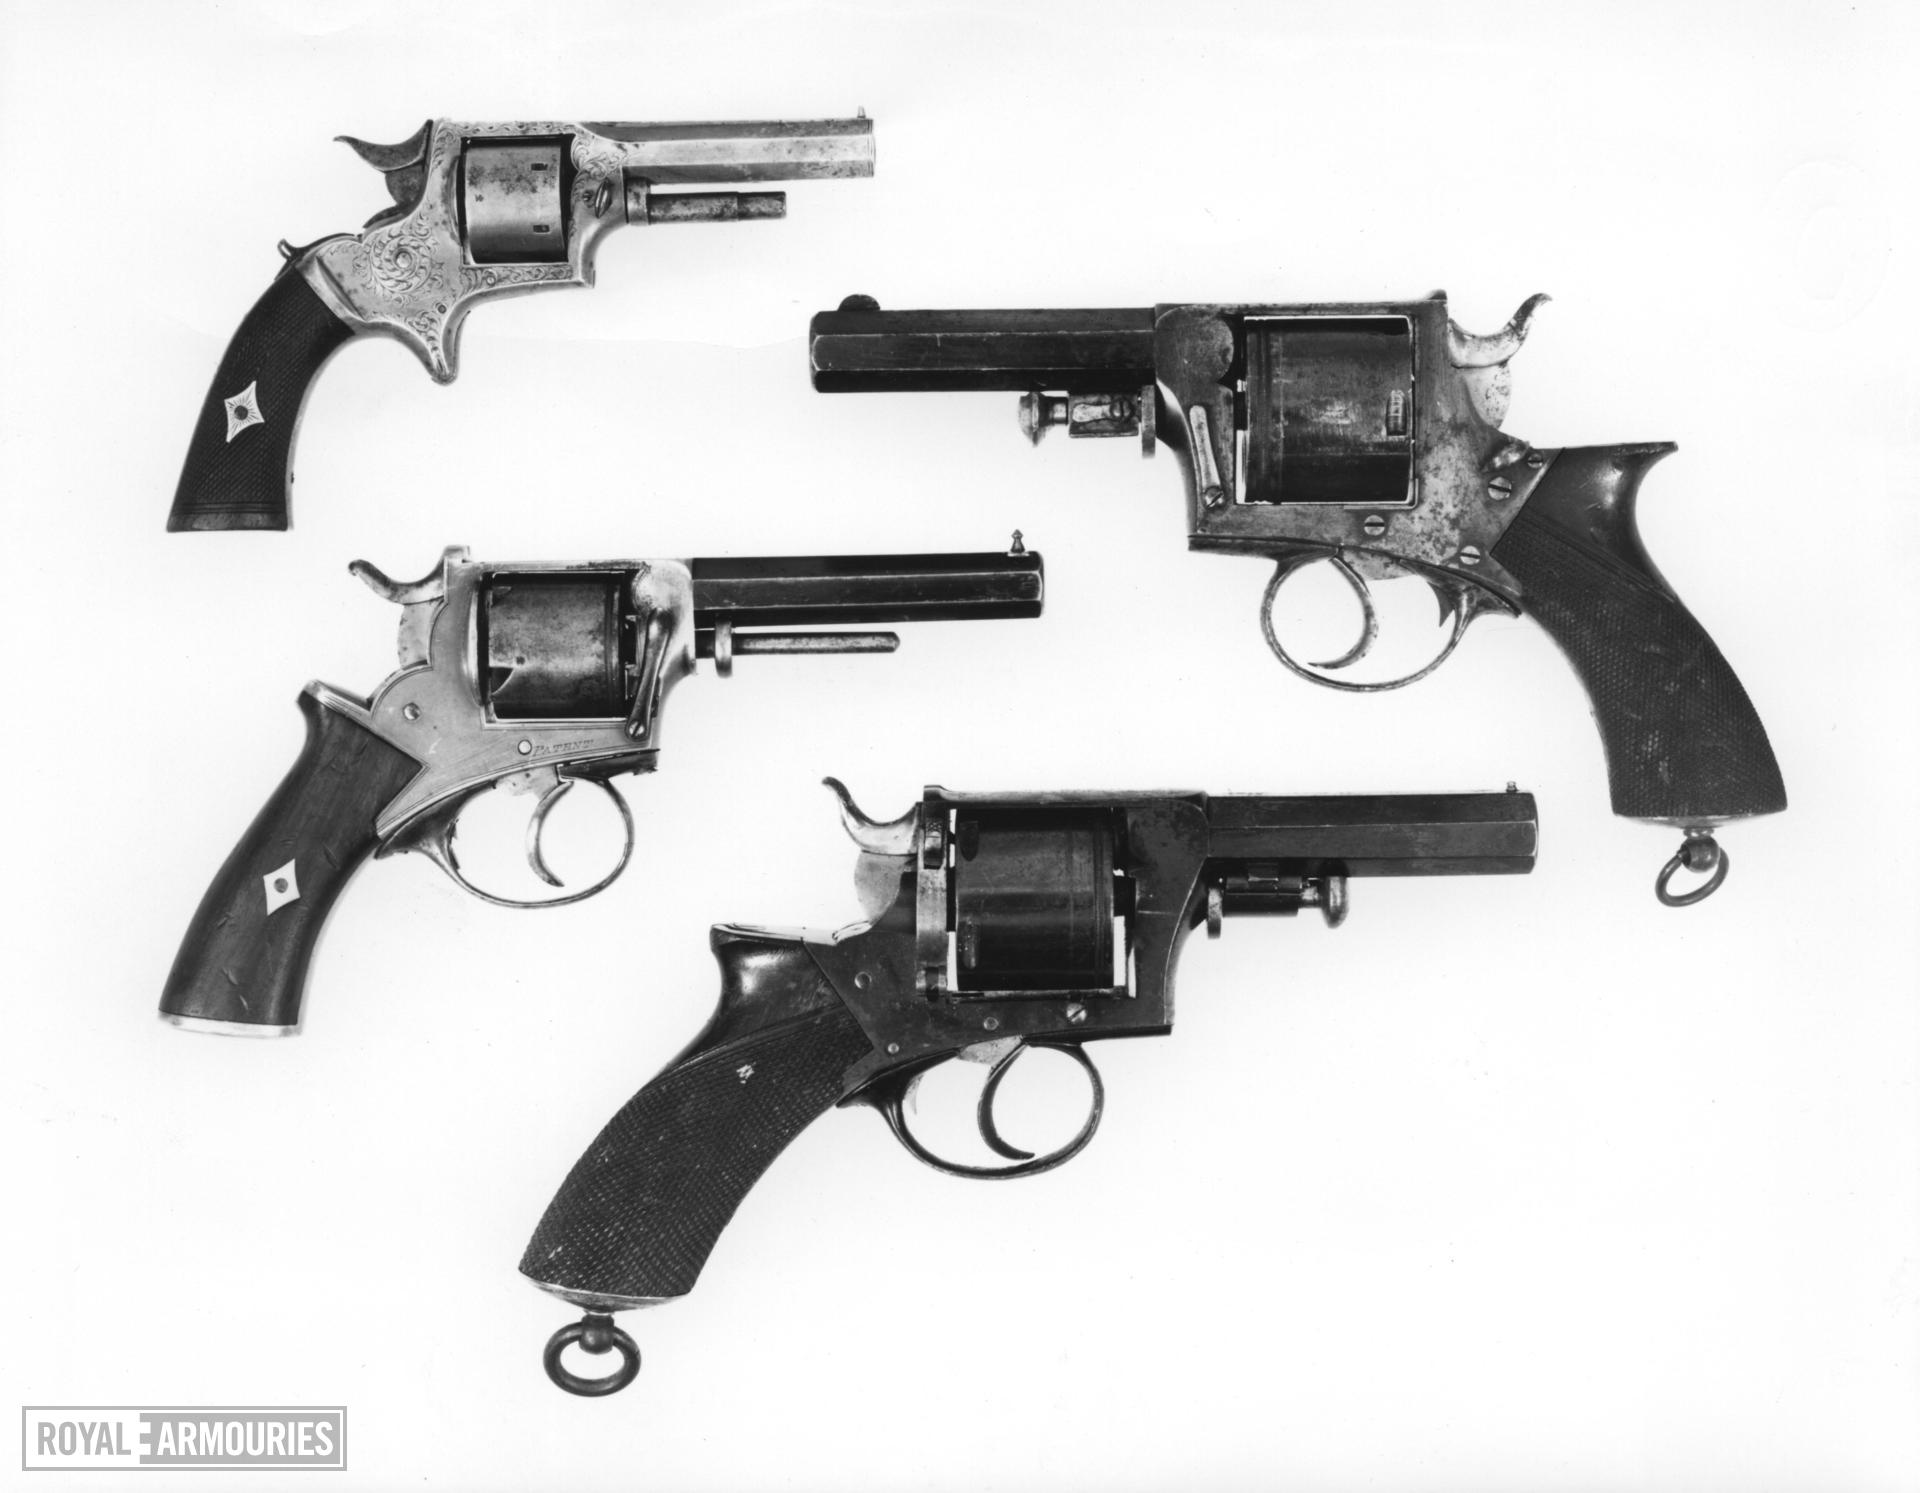 Centrefire five-shot revolver - Rod Ejecting type